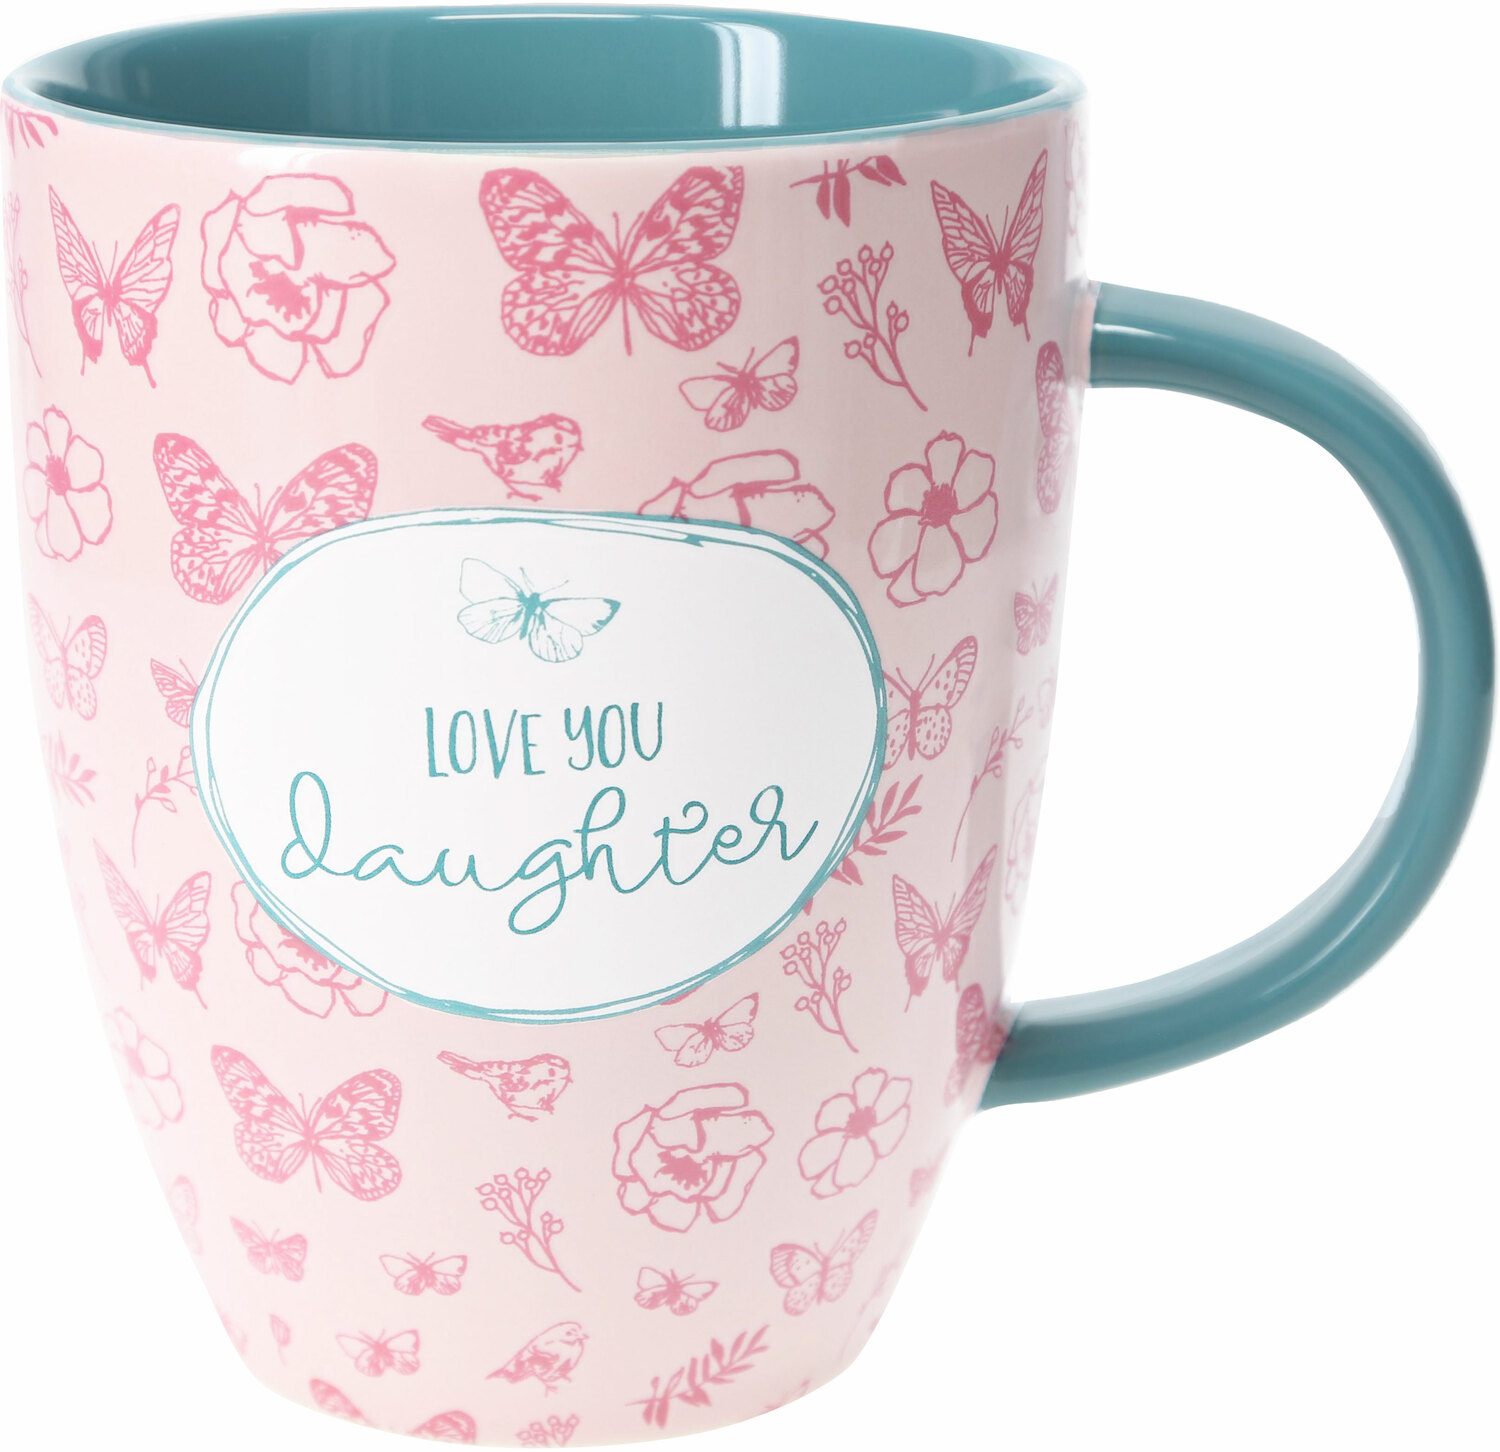 Daughter by Heartful Love - Daughter - 20 oz. Cup